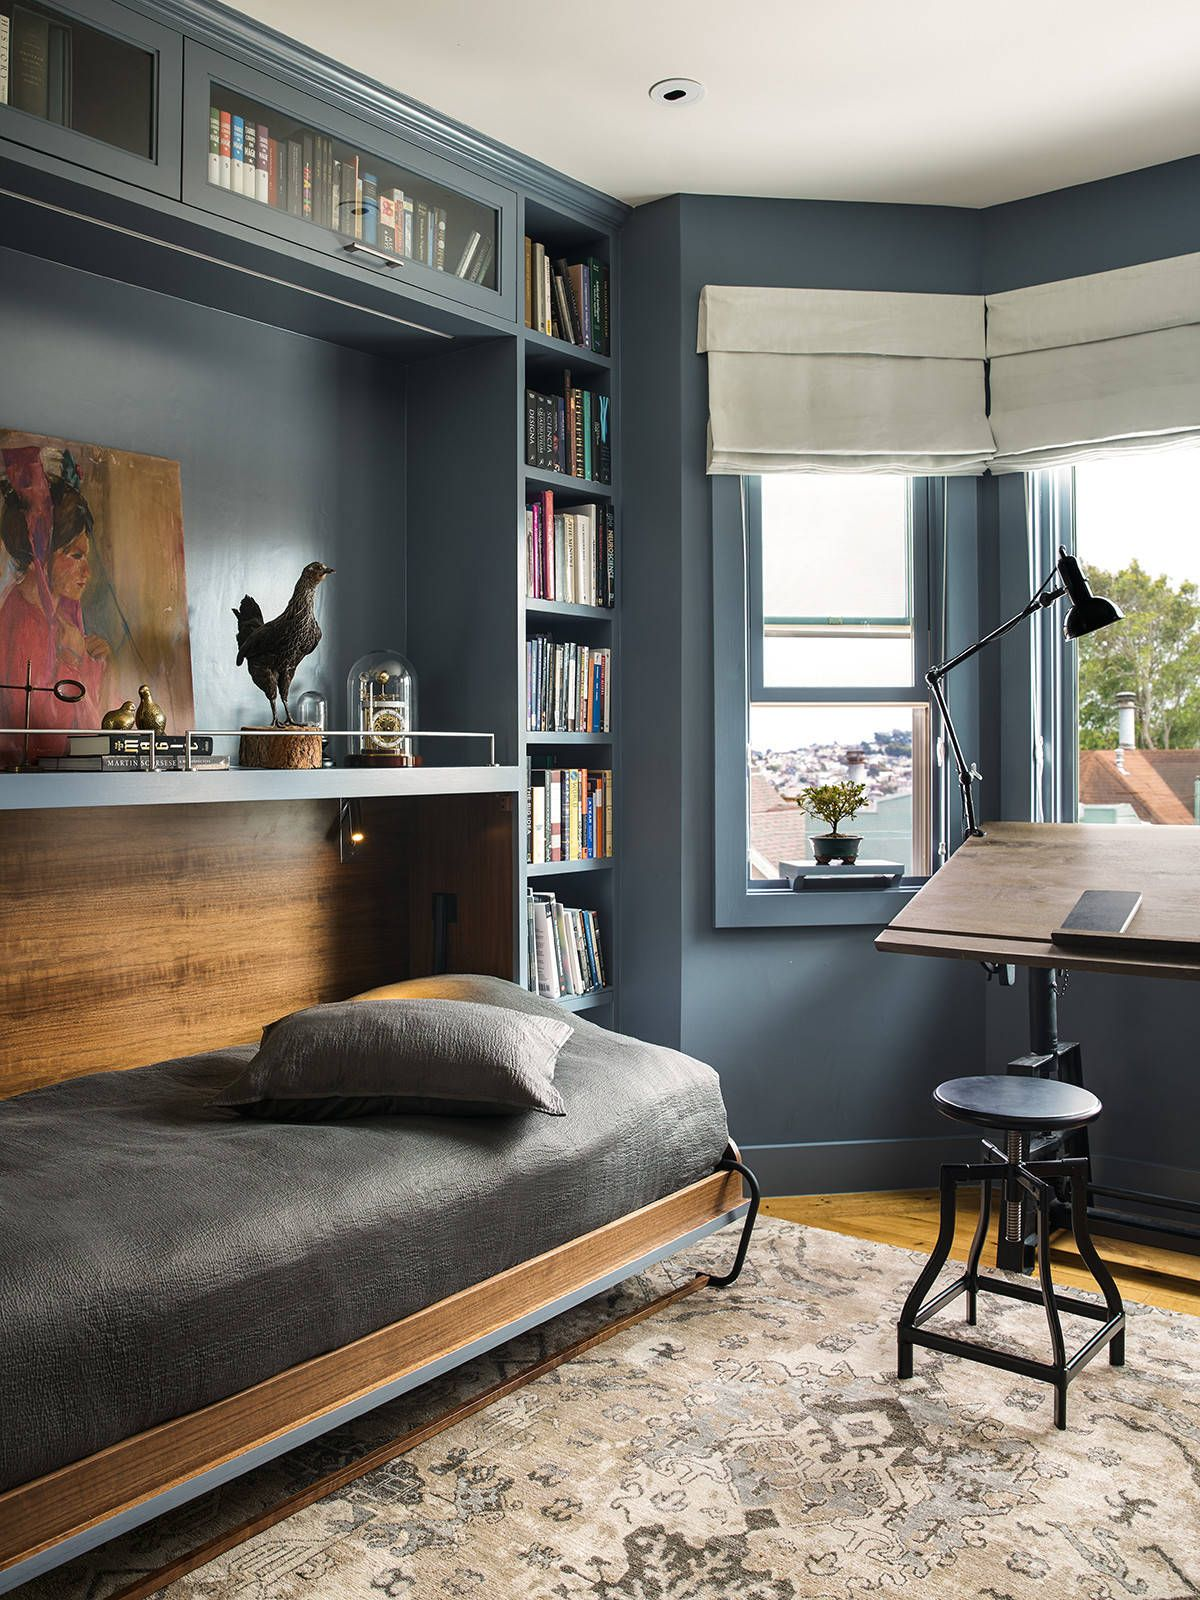 Relaxing-daybed-in-the-home-office-turns-it-into-a-practical-guest-room-when-needed-47630